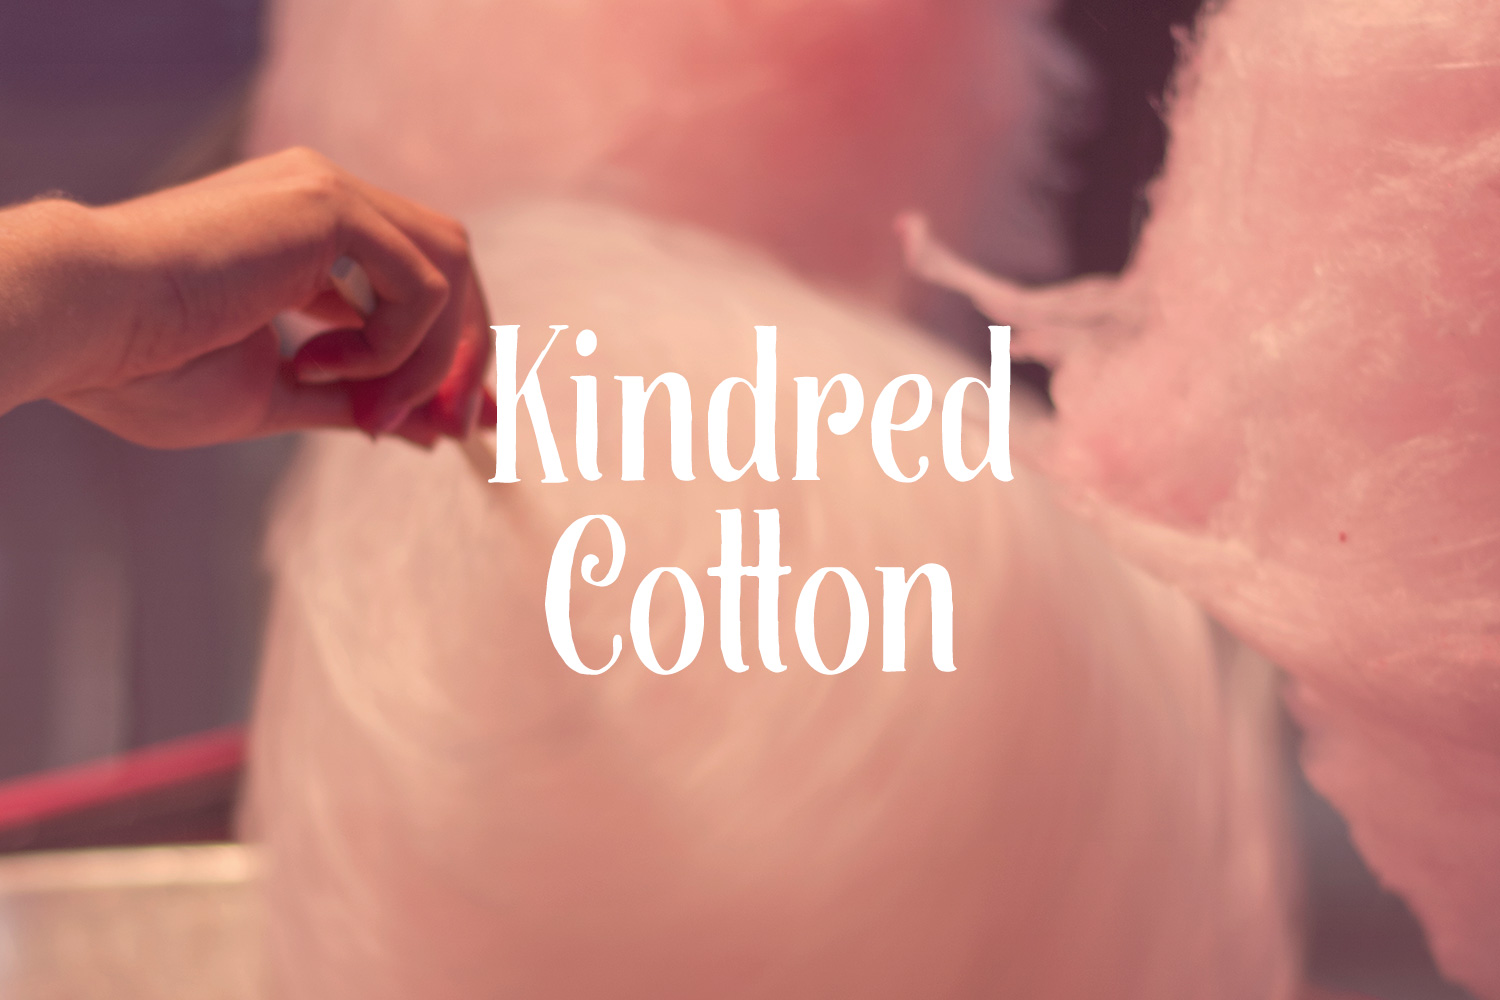 Kindred Cotton - Name & Website copy    The following is placeholder text that will be an excerpt from the case study page.Vivamus sit amet semper lacus, in mollis libero. Vestibulum ante ipsum primis in faucibus orci luctus et ultrices posuere cubilia Curae.